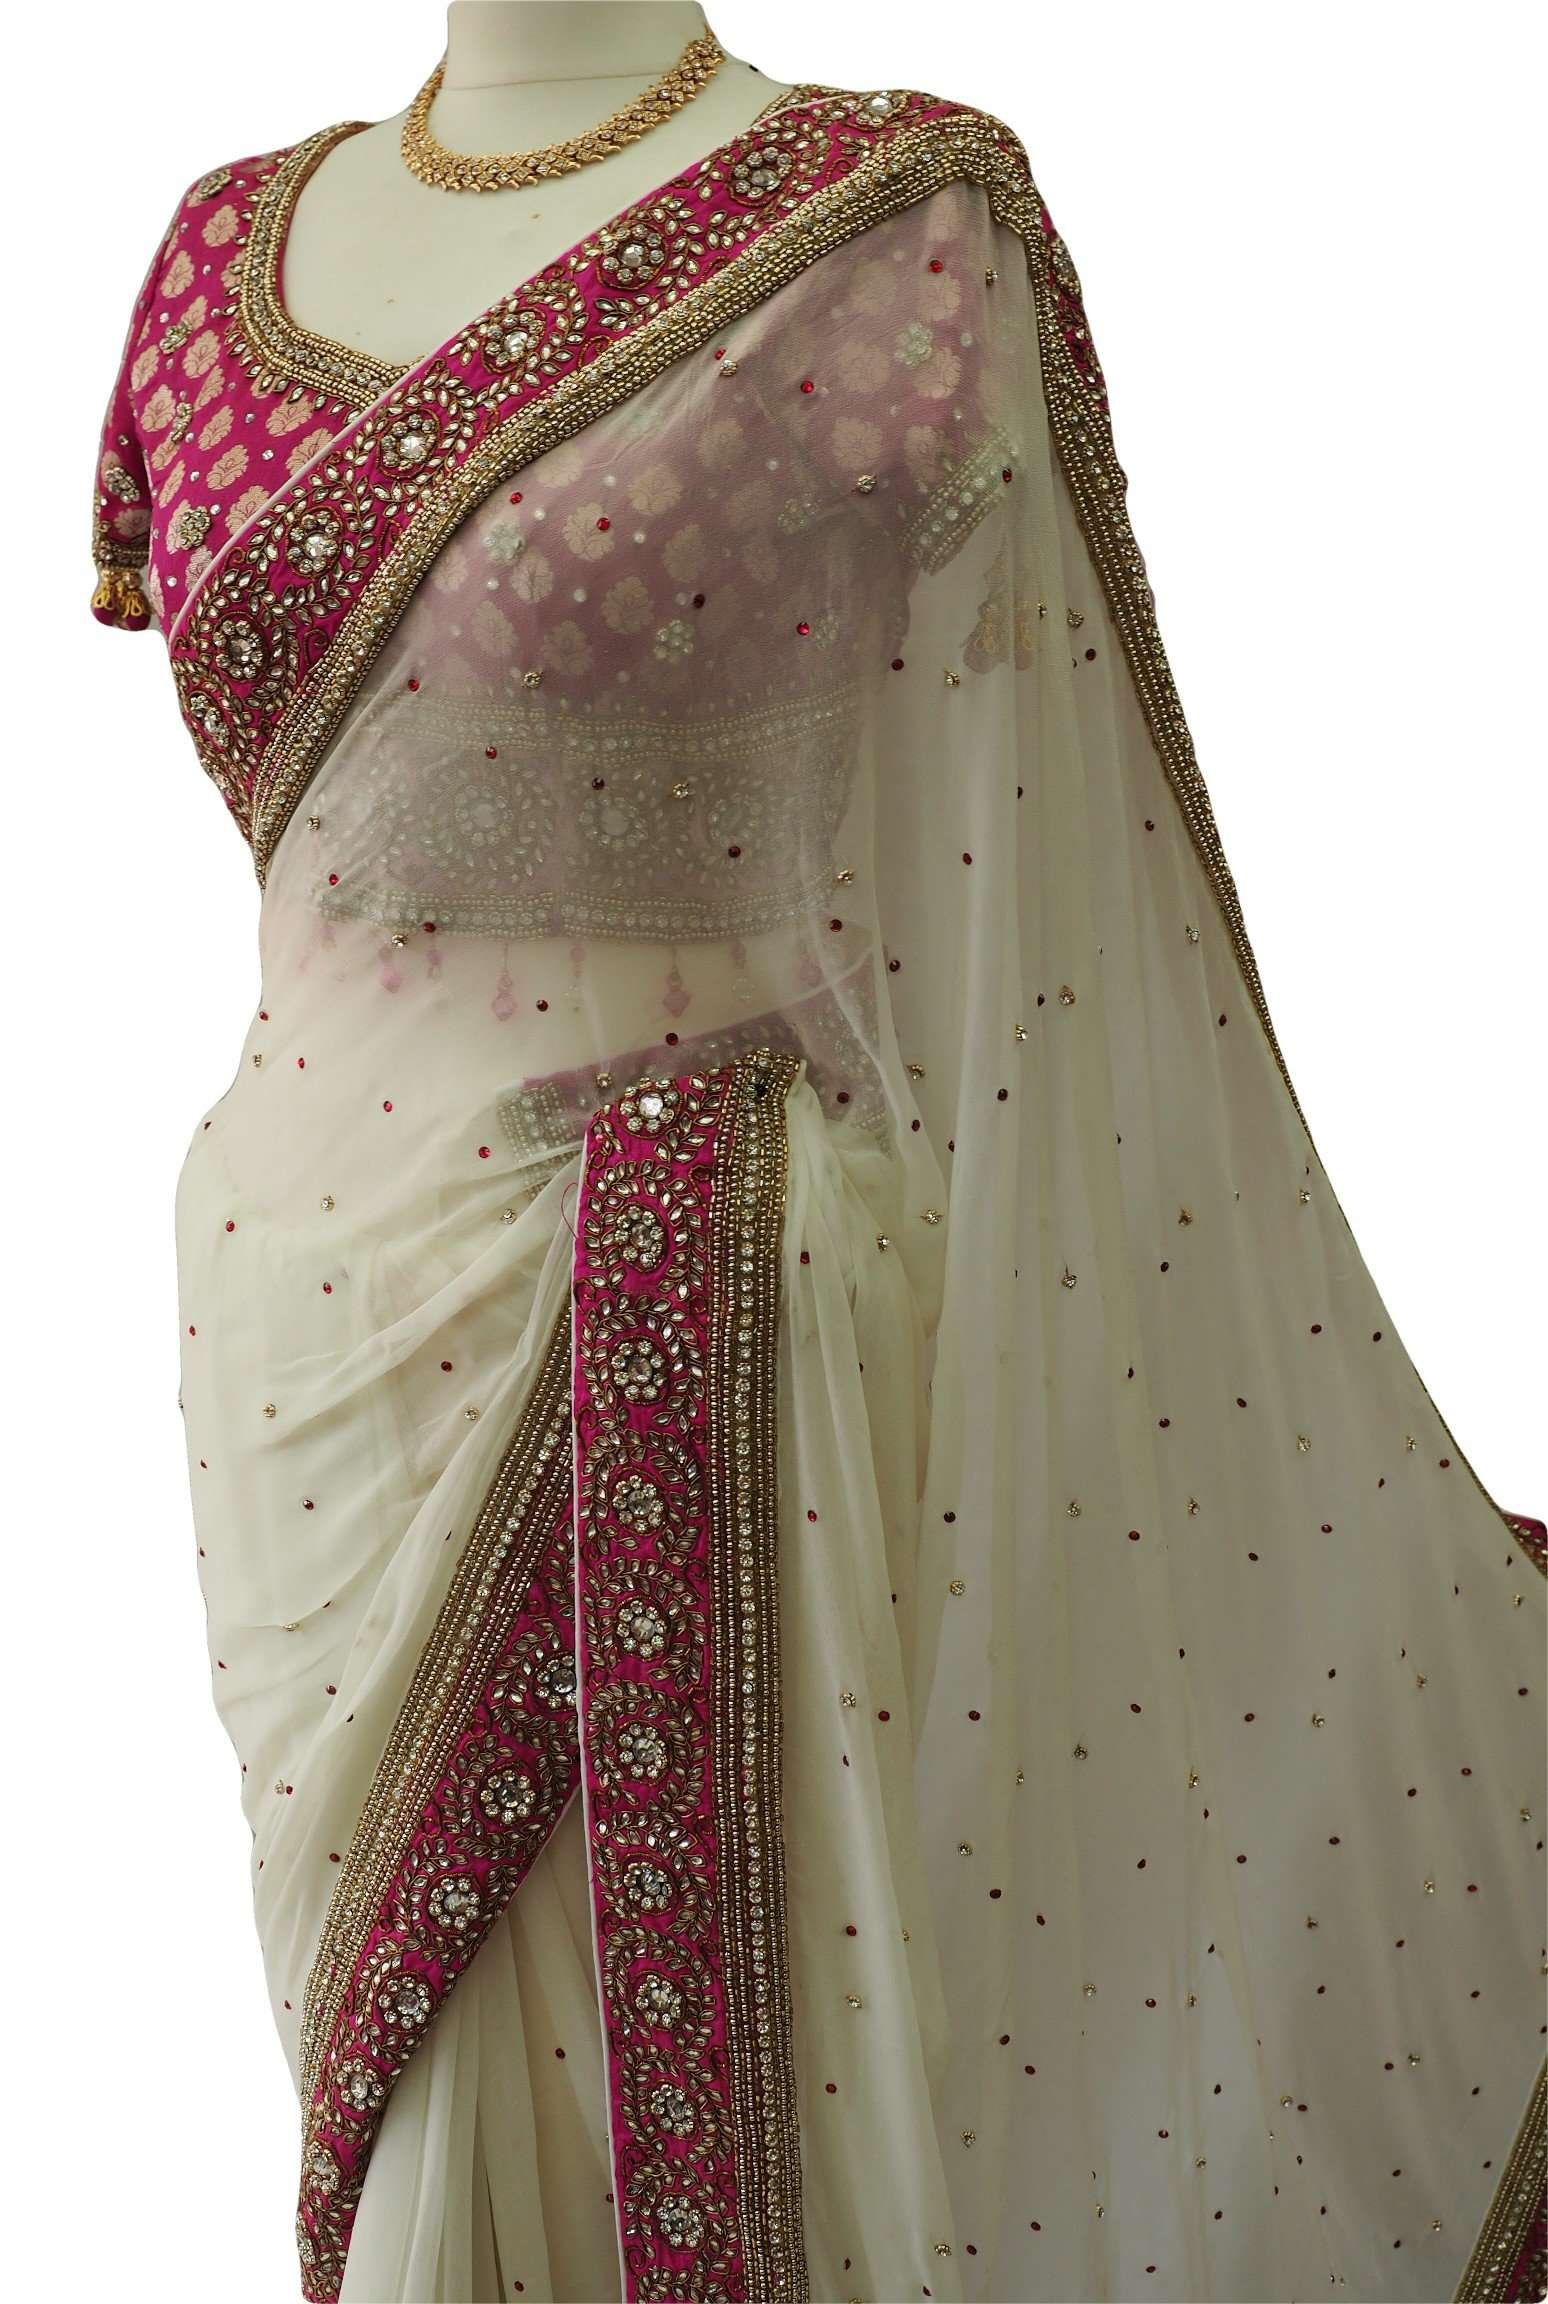 Stunning Chiffon Off White saree with rich border and brocade embroidered Blouse - MM1801KJP - Prachy Creations